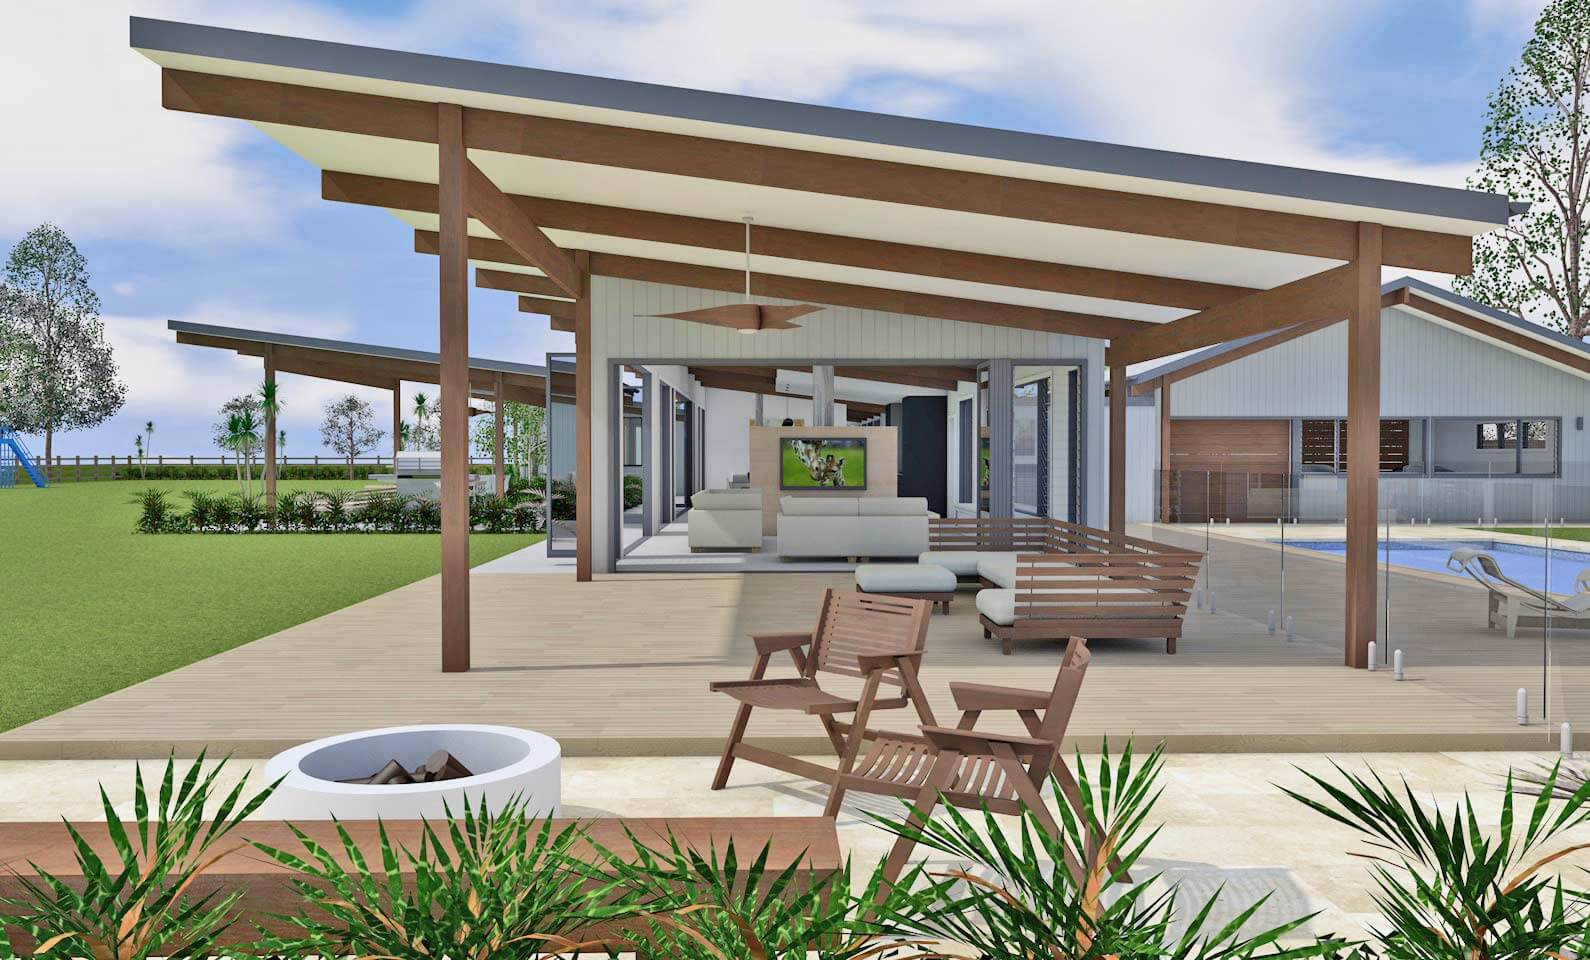 Architect Design 3D Concept - Vintage House Hunter Valley on Aust Outdoor Living  id=73696